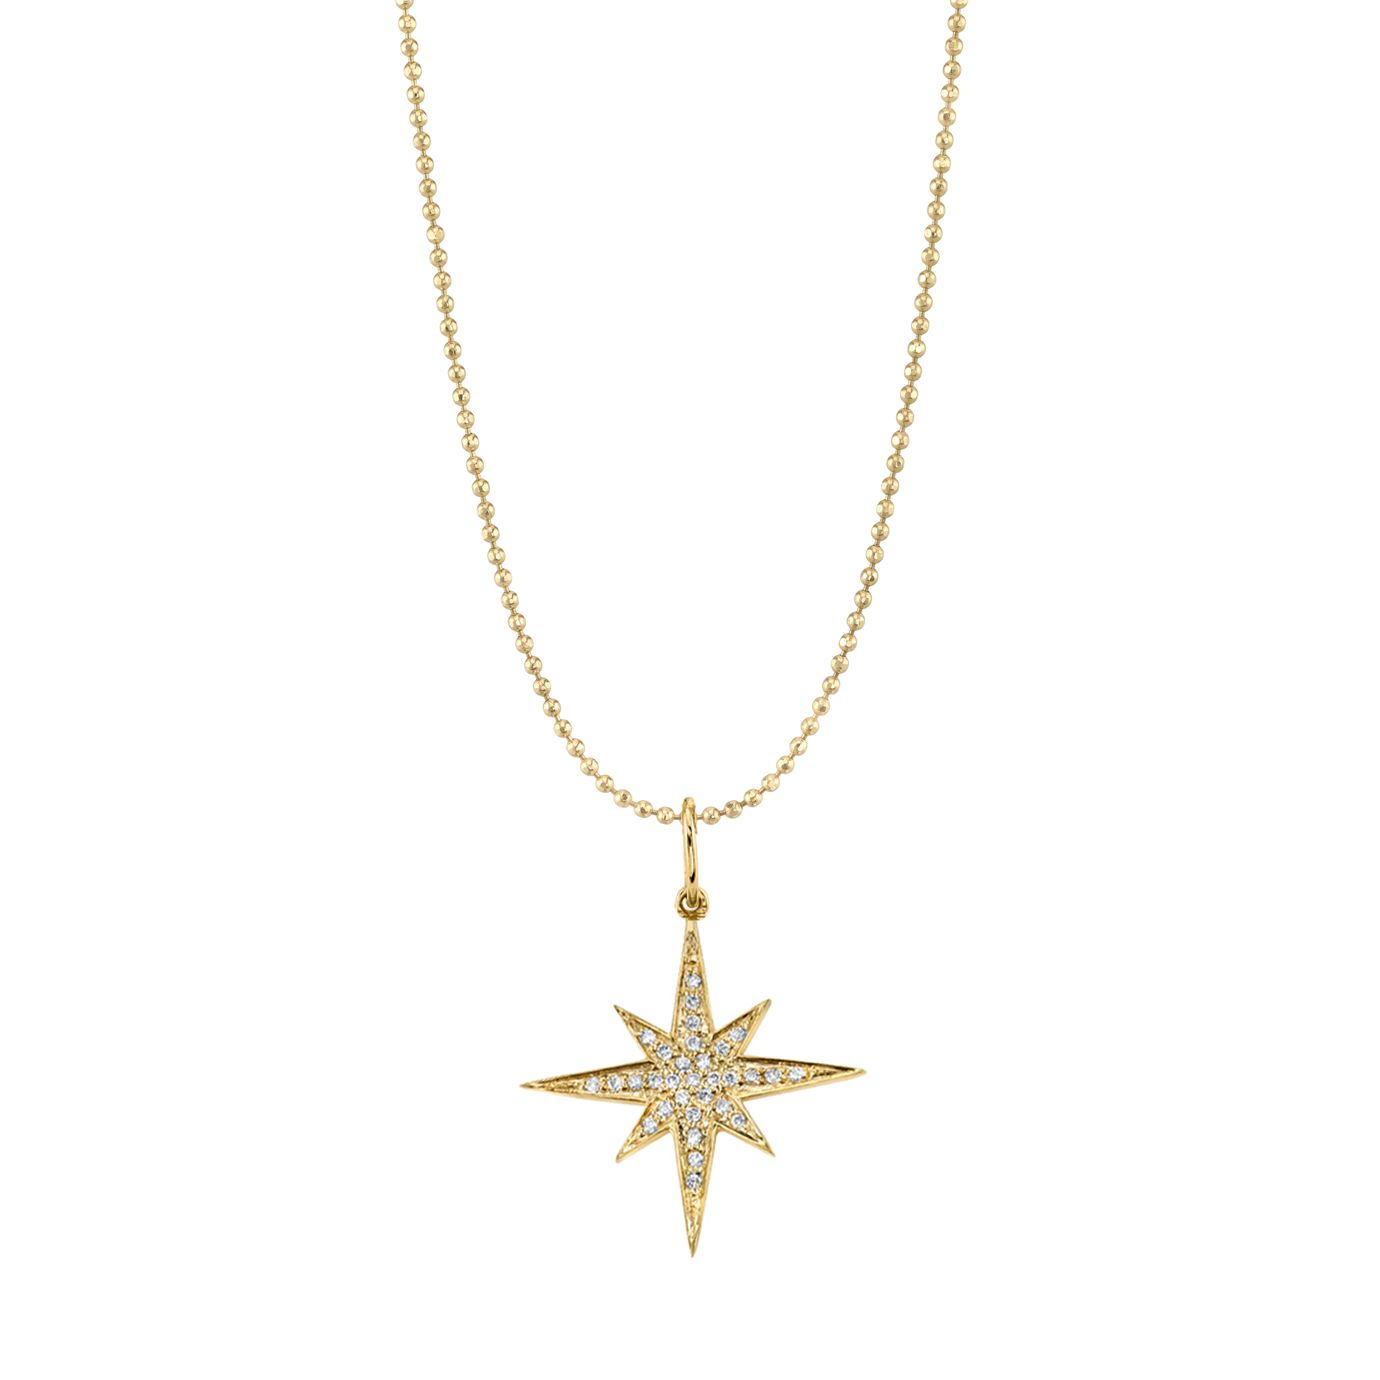 Medium Gold & Diamond Starburst Necklace Regarding Most Recently Released Medium Diamond Necklaces (View 7 of 25)